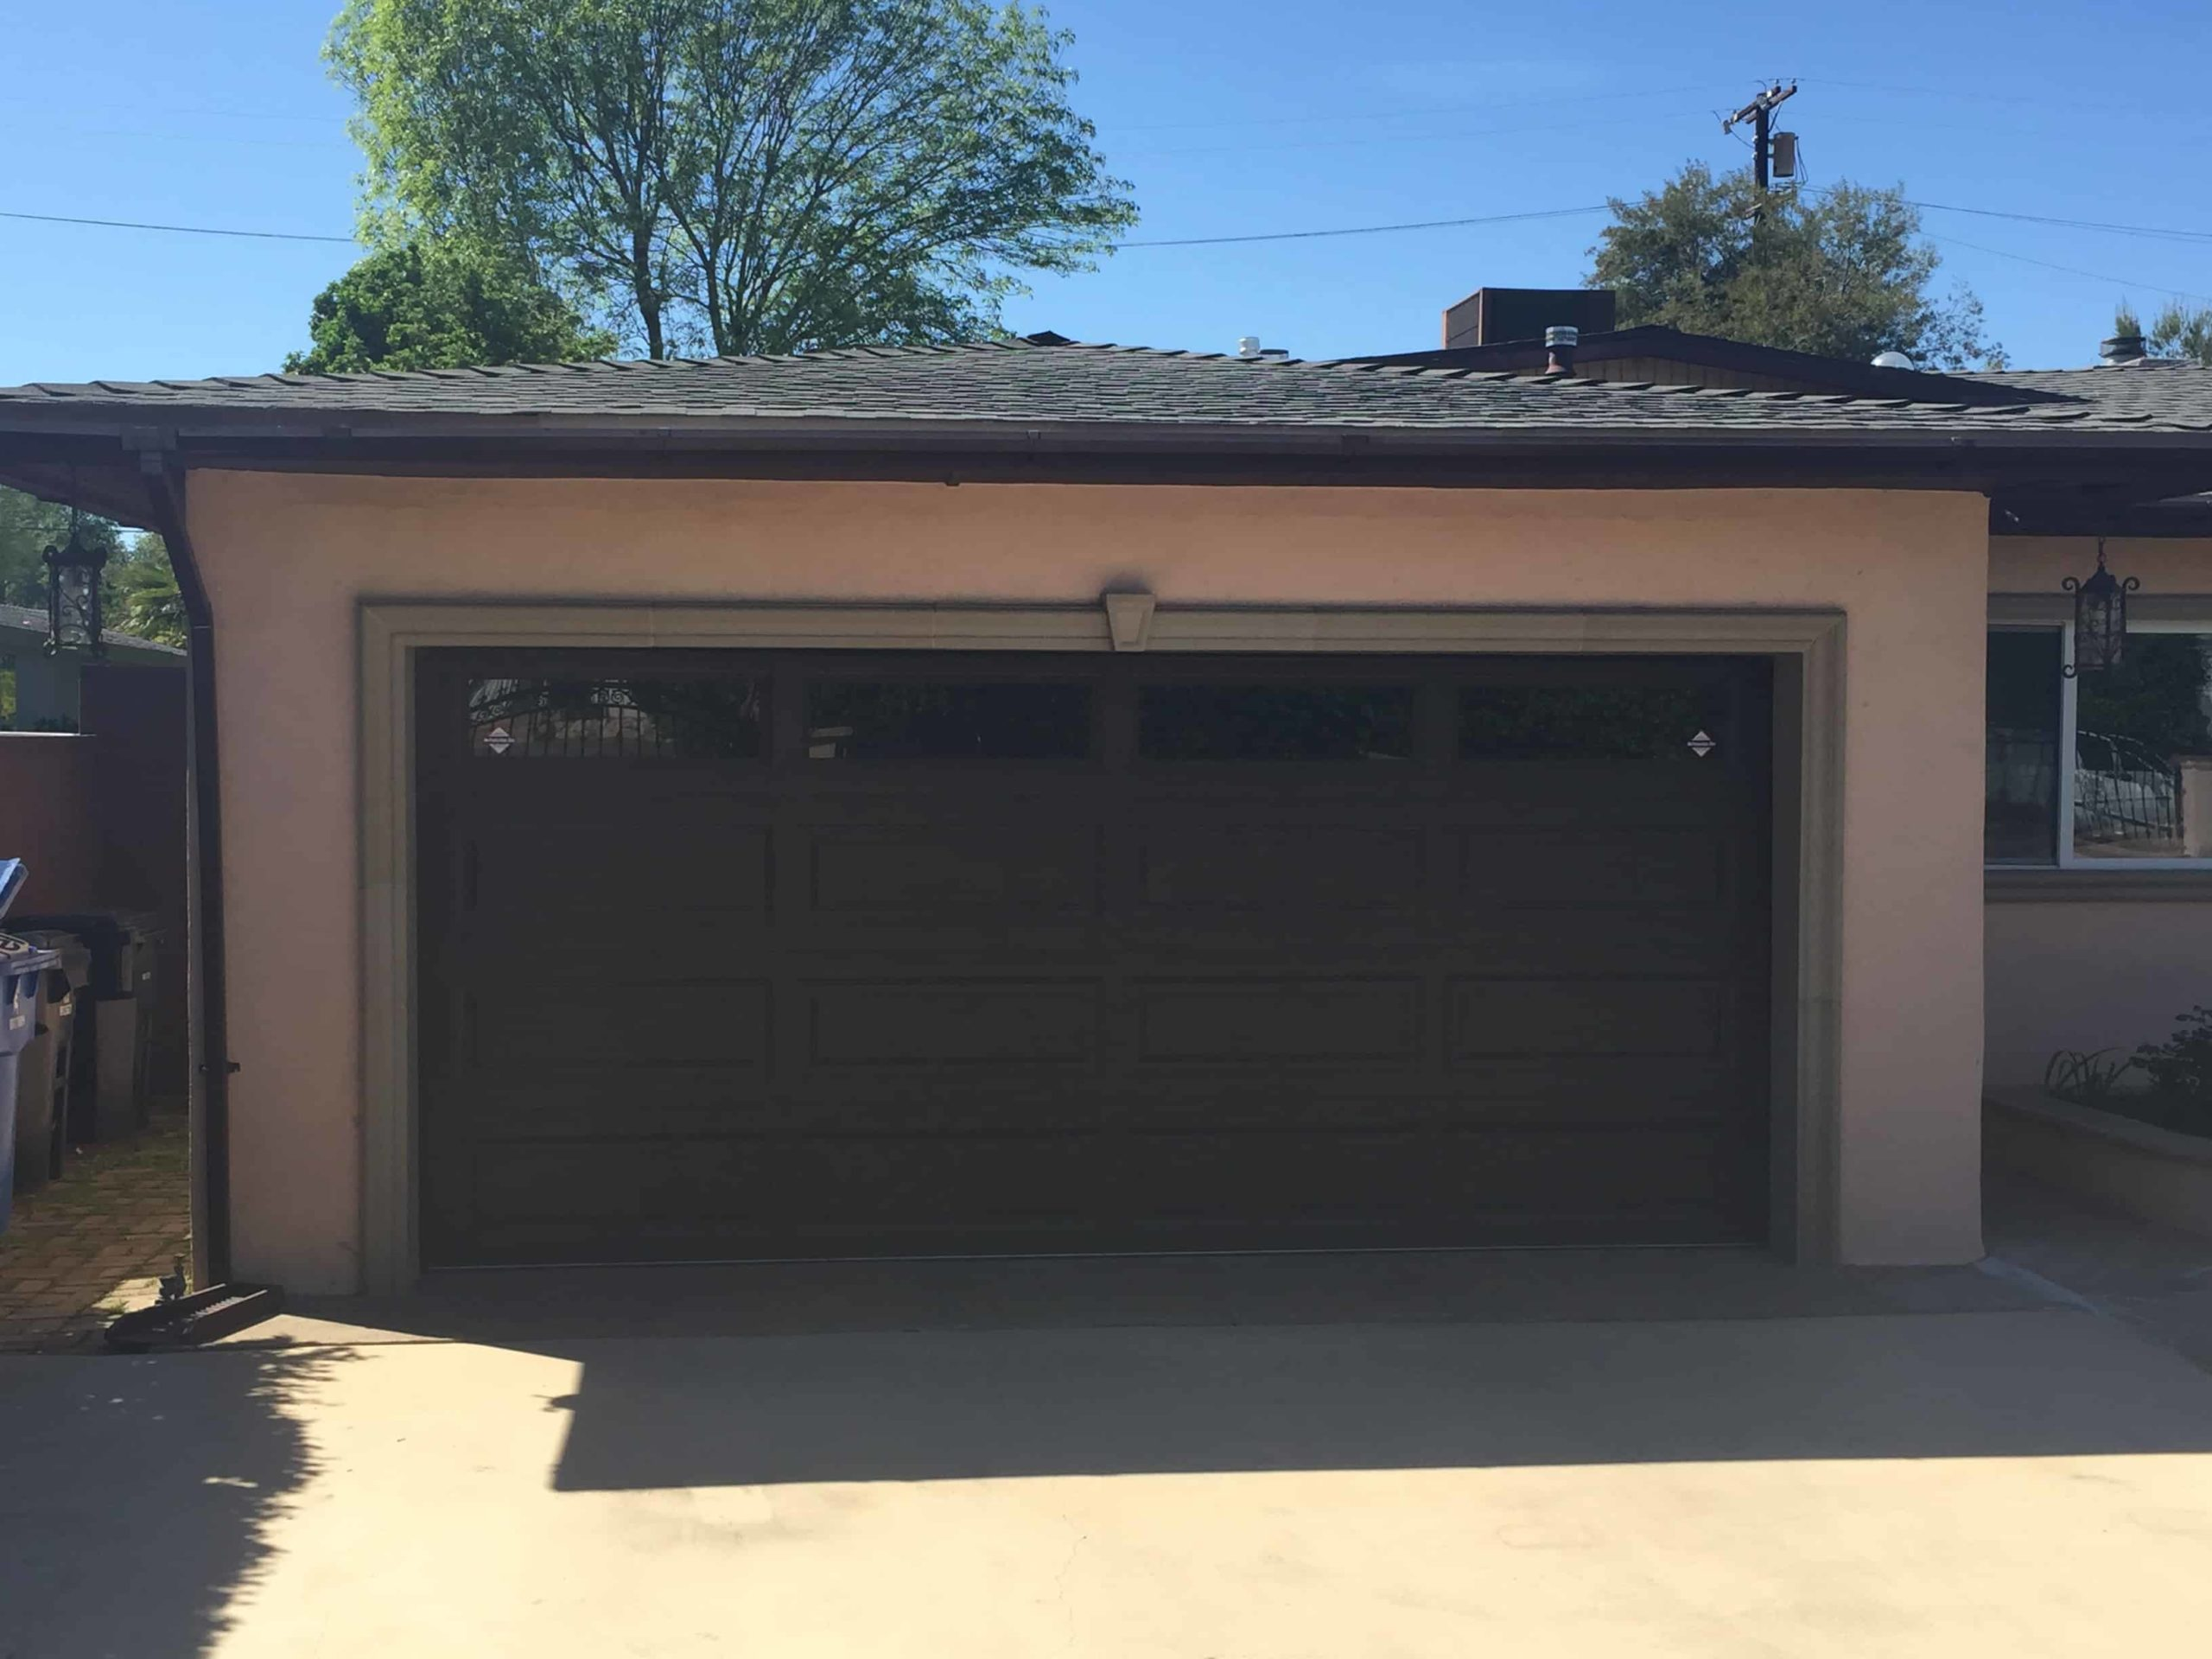 Where to Find High Quality, Reliable Garage Door Repair Services in California?